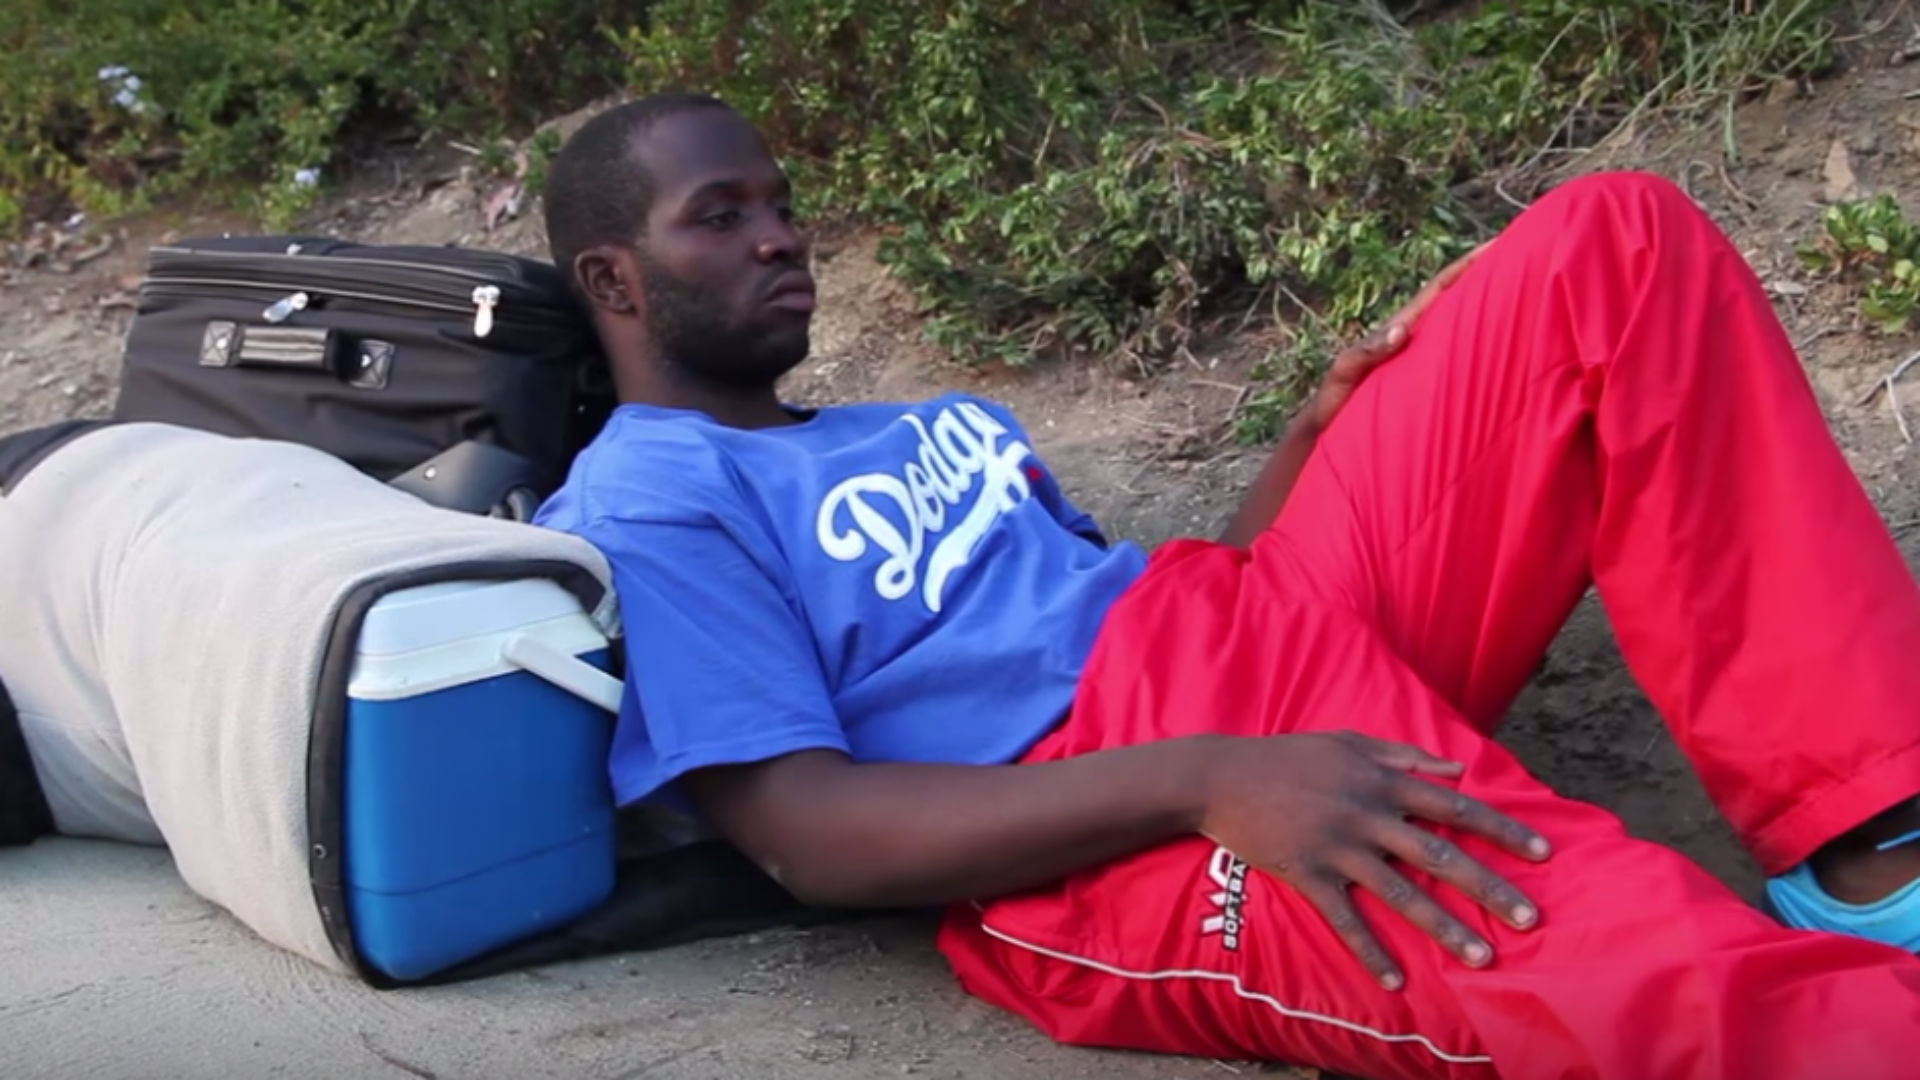 In 'Dodger Dreams' Doc a Cuban Baseball Hopeful Explains Why He's Camping Out at Dodger Stadium